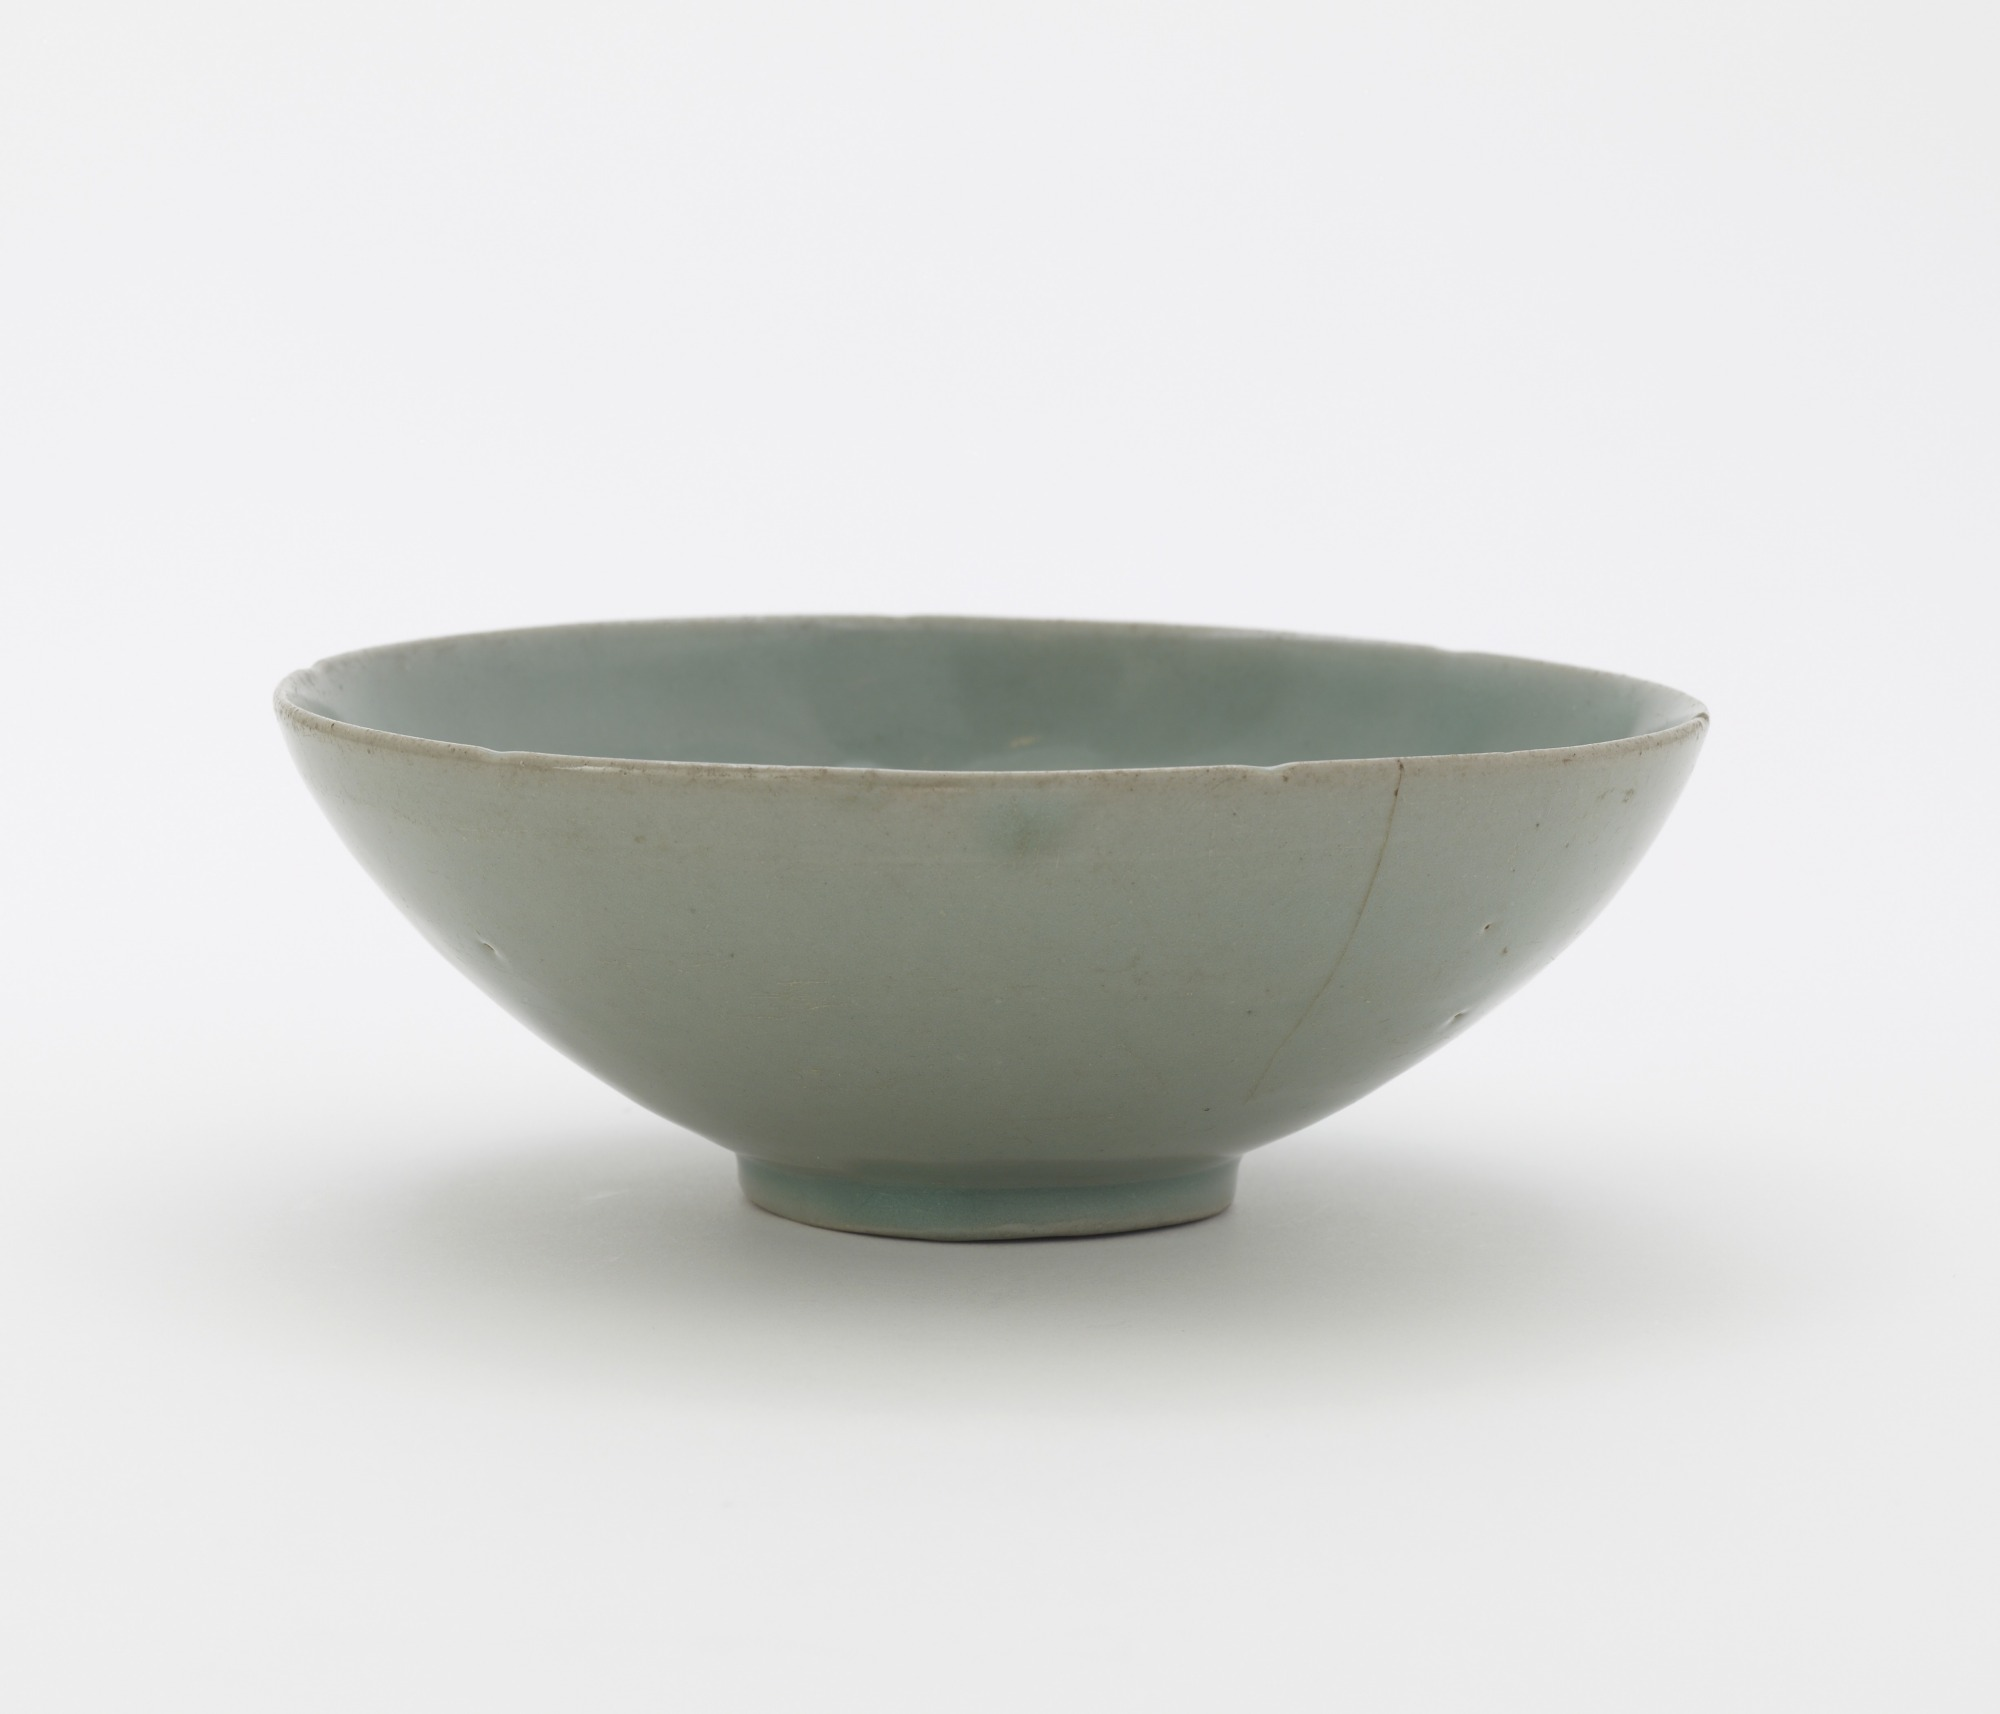 Bowl with molded decoration of peony blossoms, profile